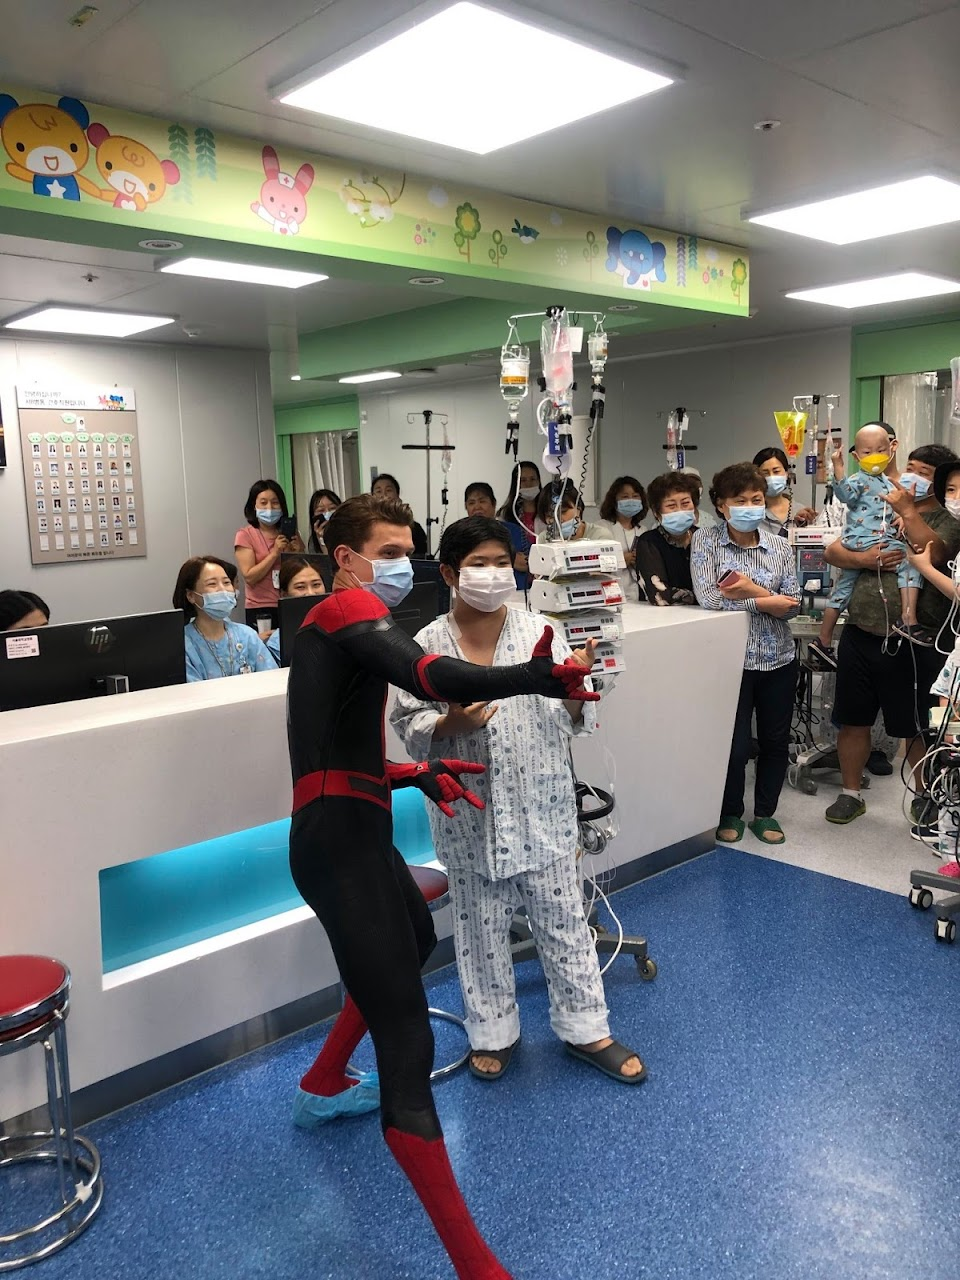 tom holland korea kids hospital 2